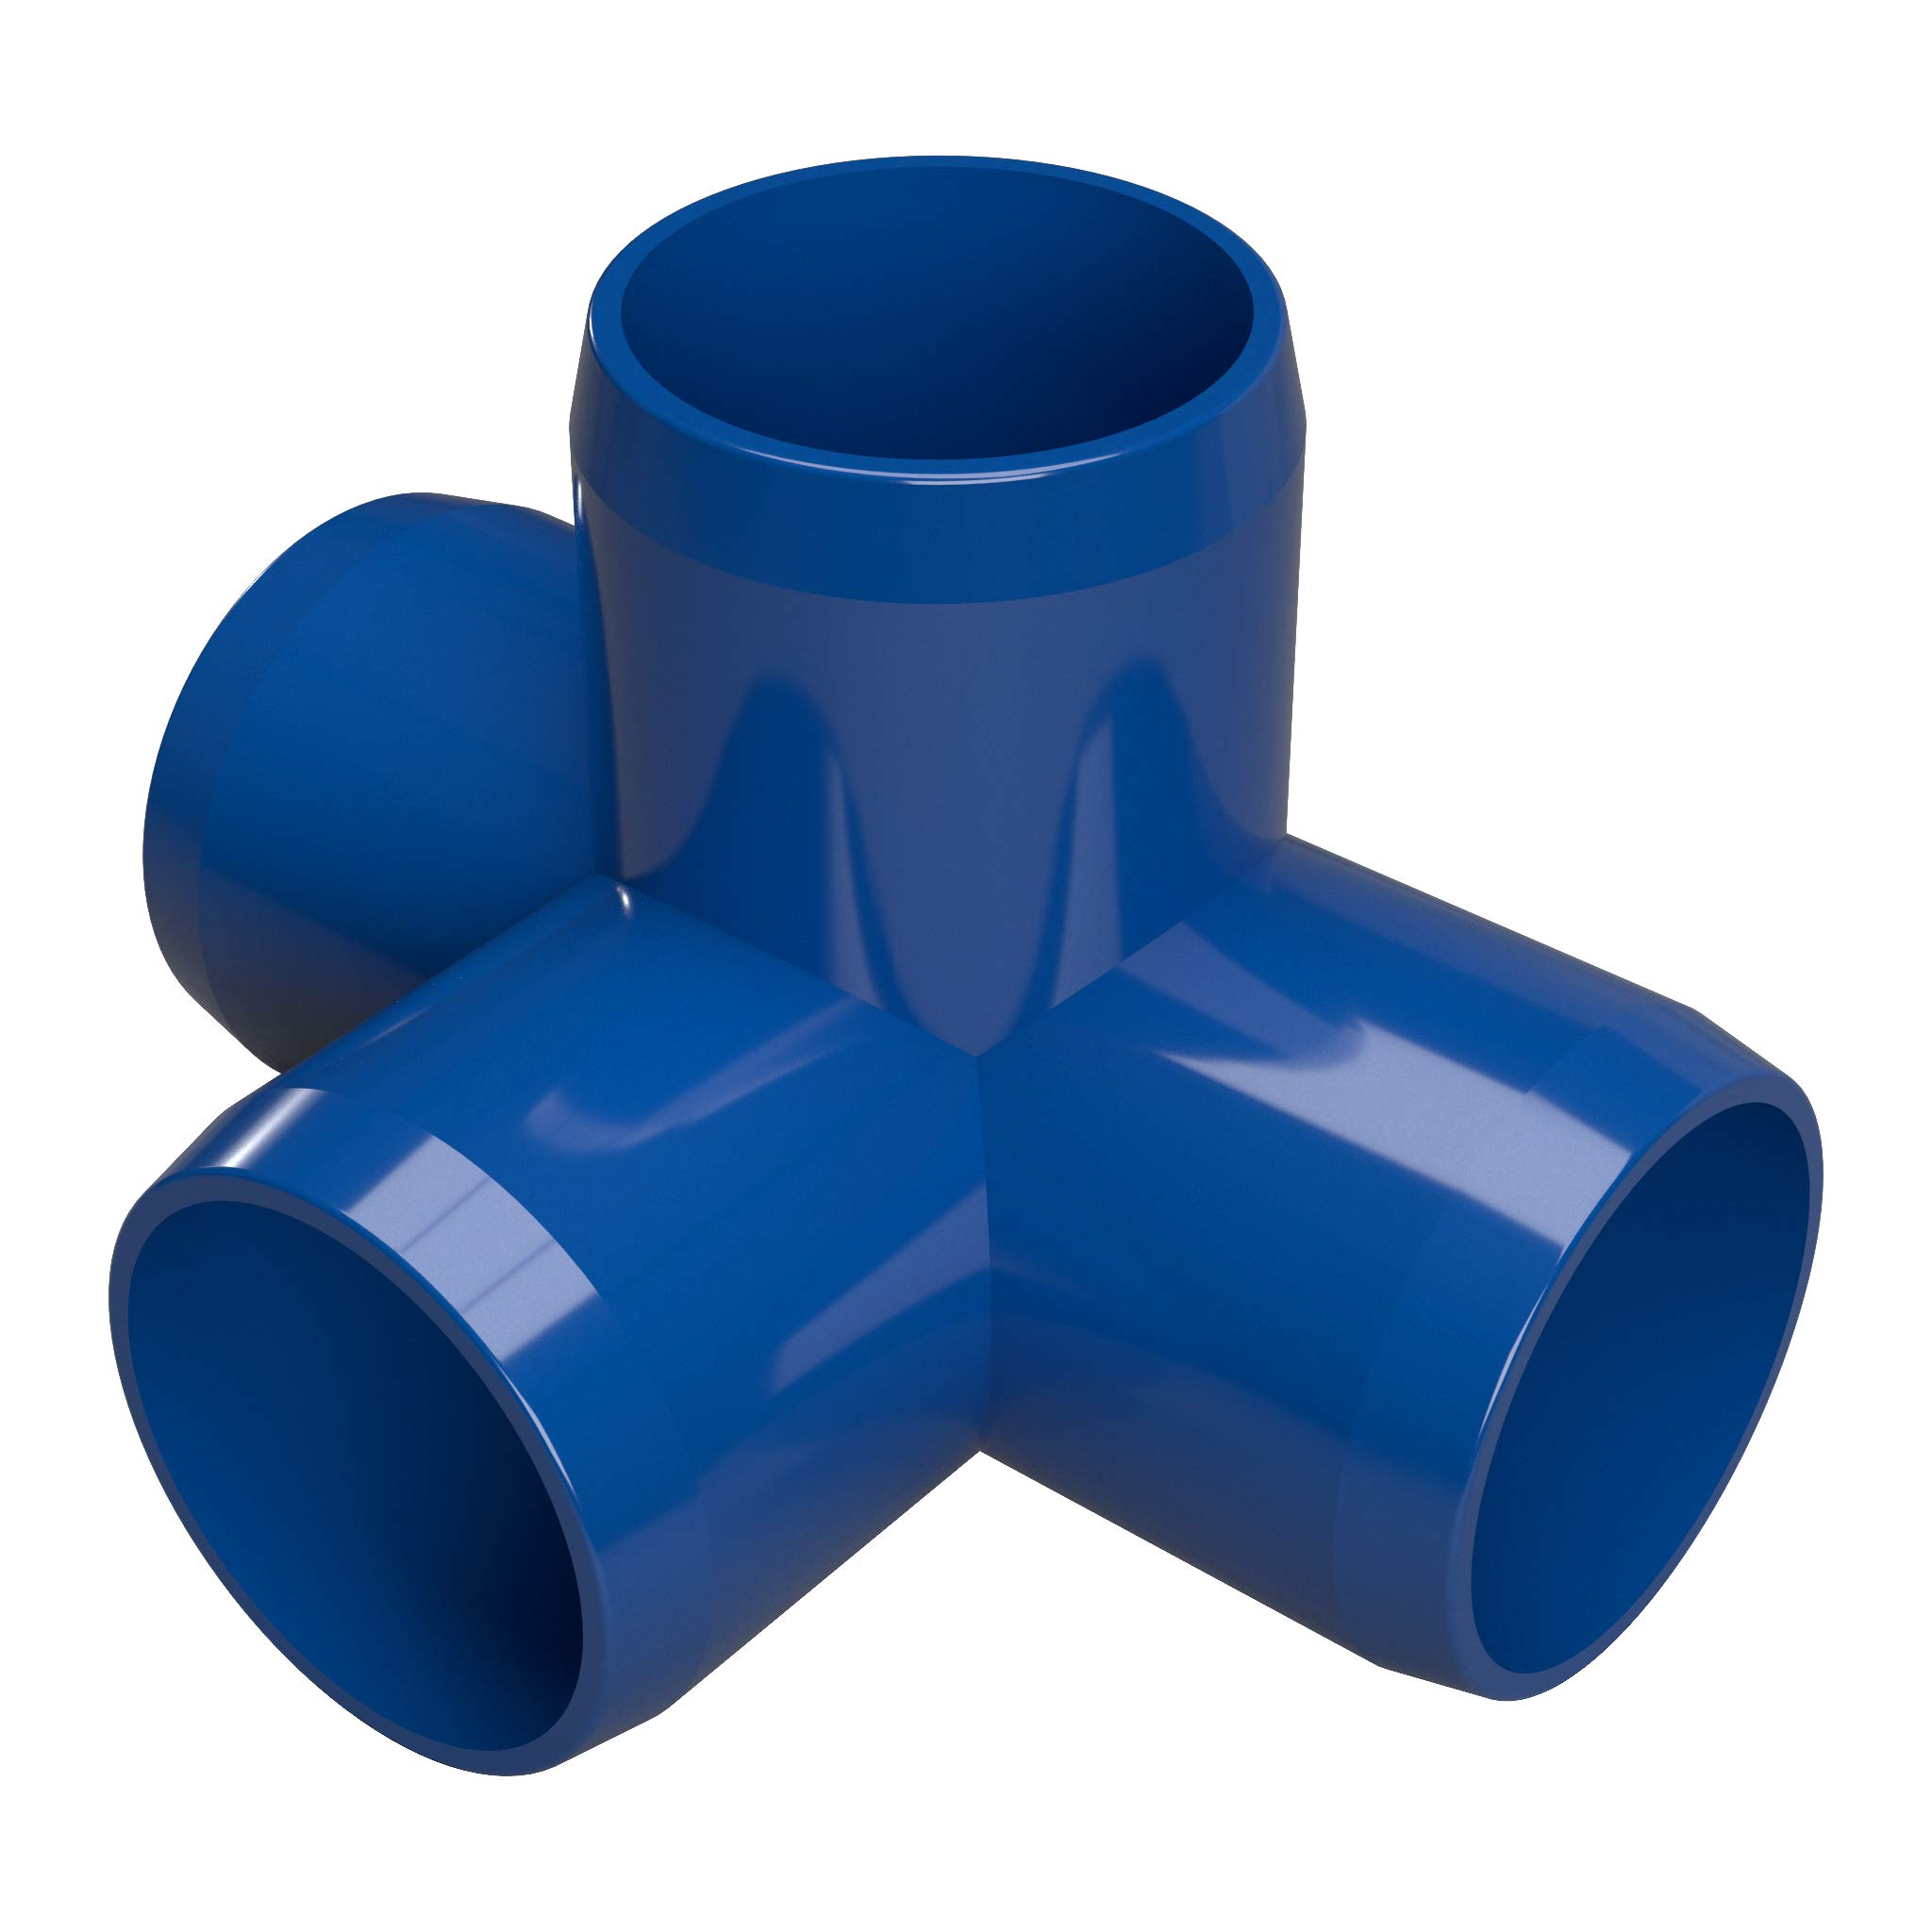 FORMUFIT F1144WT-BL-4 4-Way Tee PVC Fitting, Furniture Grade, 1-1/4'' Size, Blue (Pack of 4)